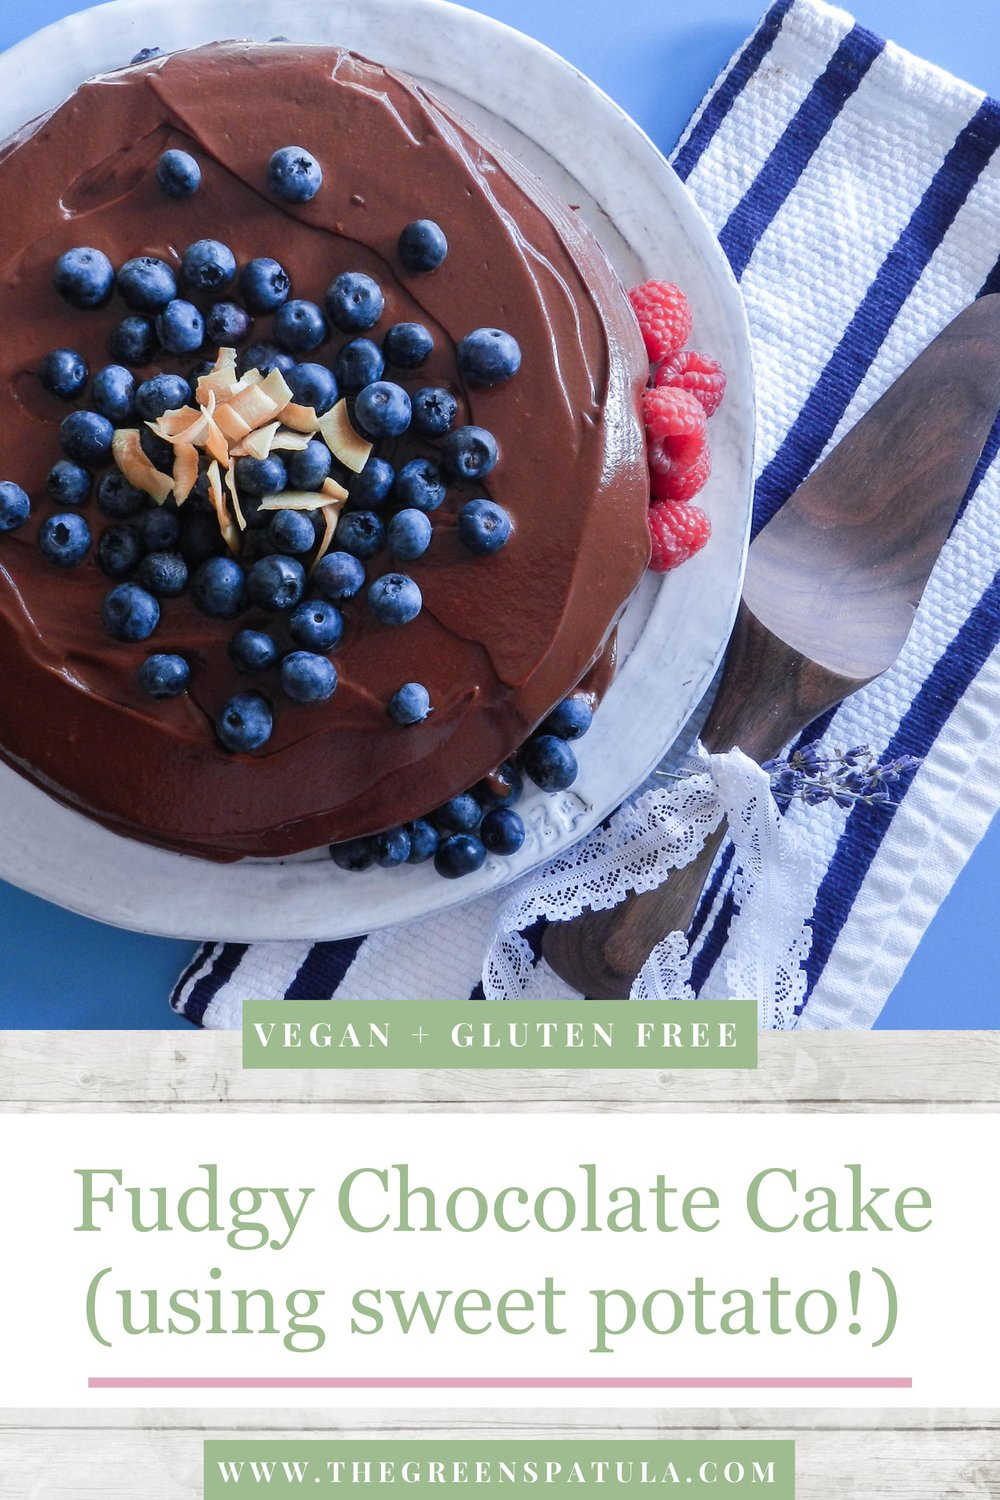 A decadently fudgy, plant-based cake made with chocolate and sweet potatoes. Topped with an equally delicious and rich chocolate frosting. Served with fresh berries and toasted coconut.